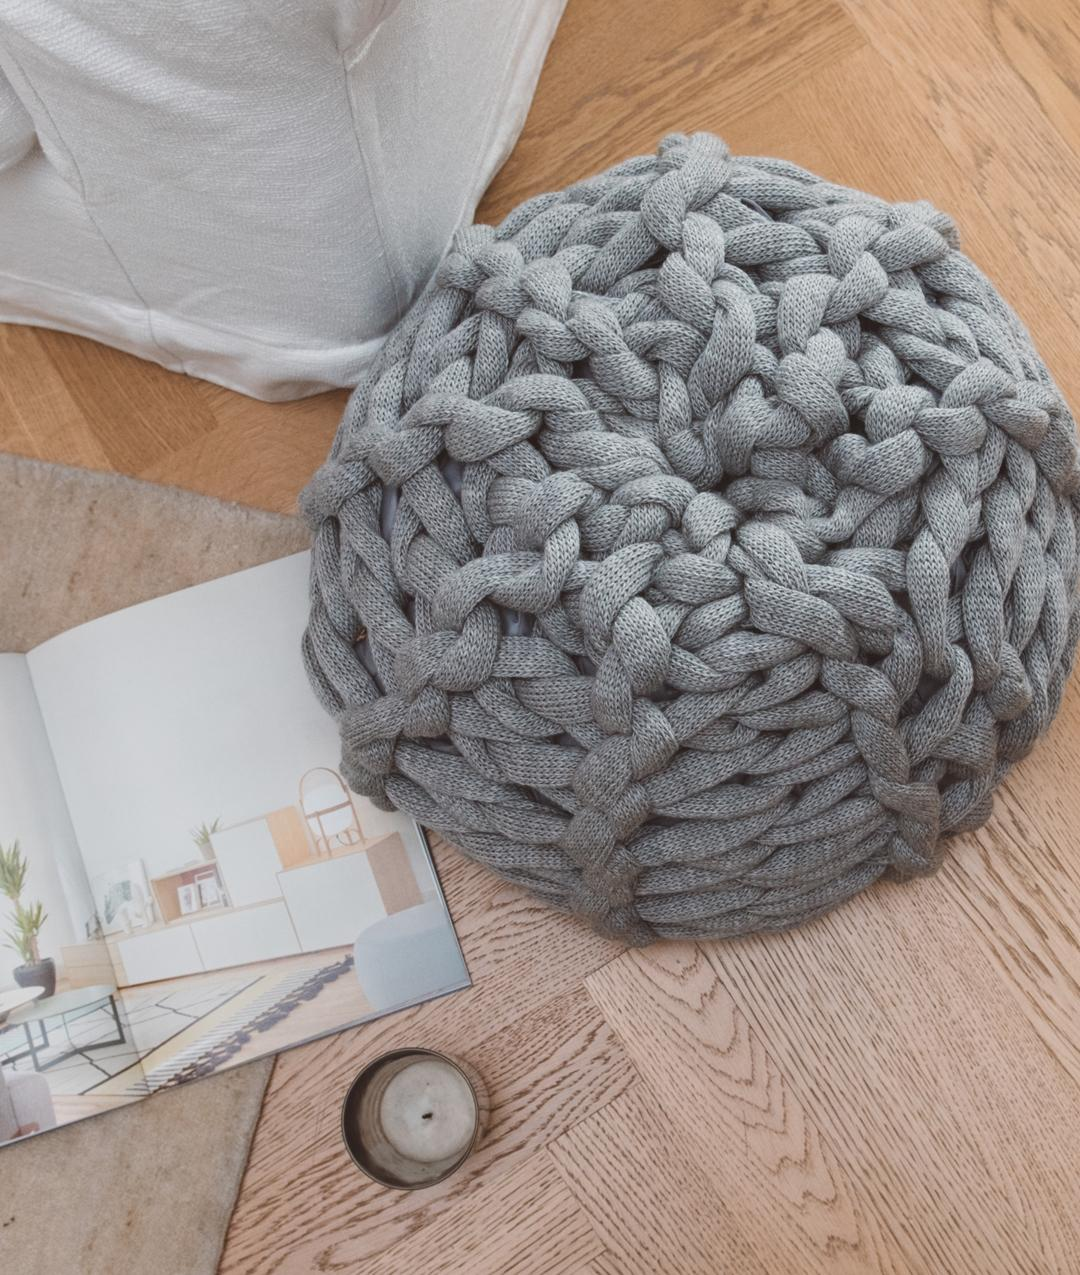 ARM & GIANT KNITTING - kits - XXL POUF - 1